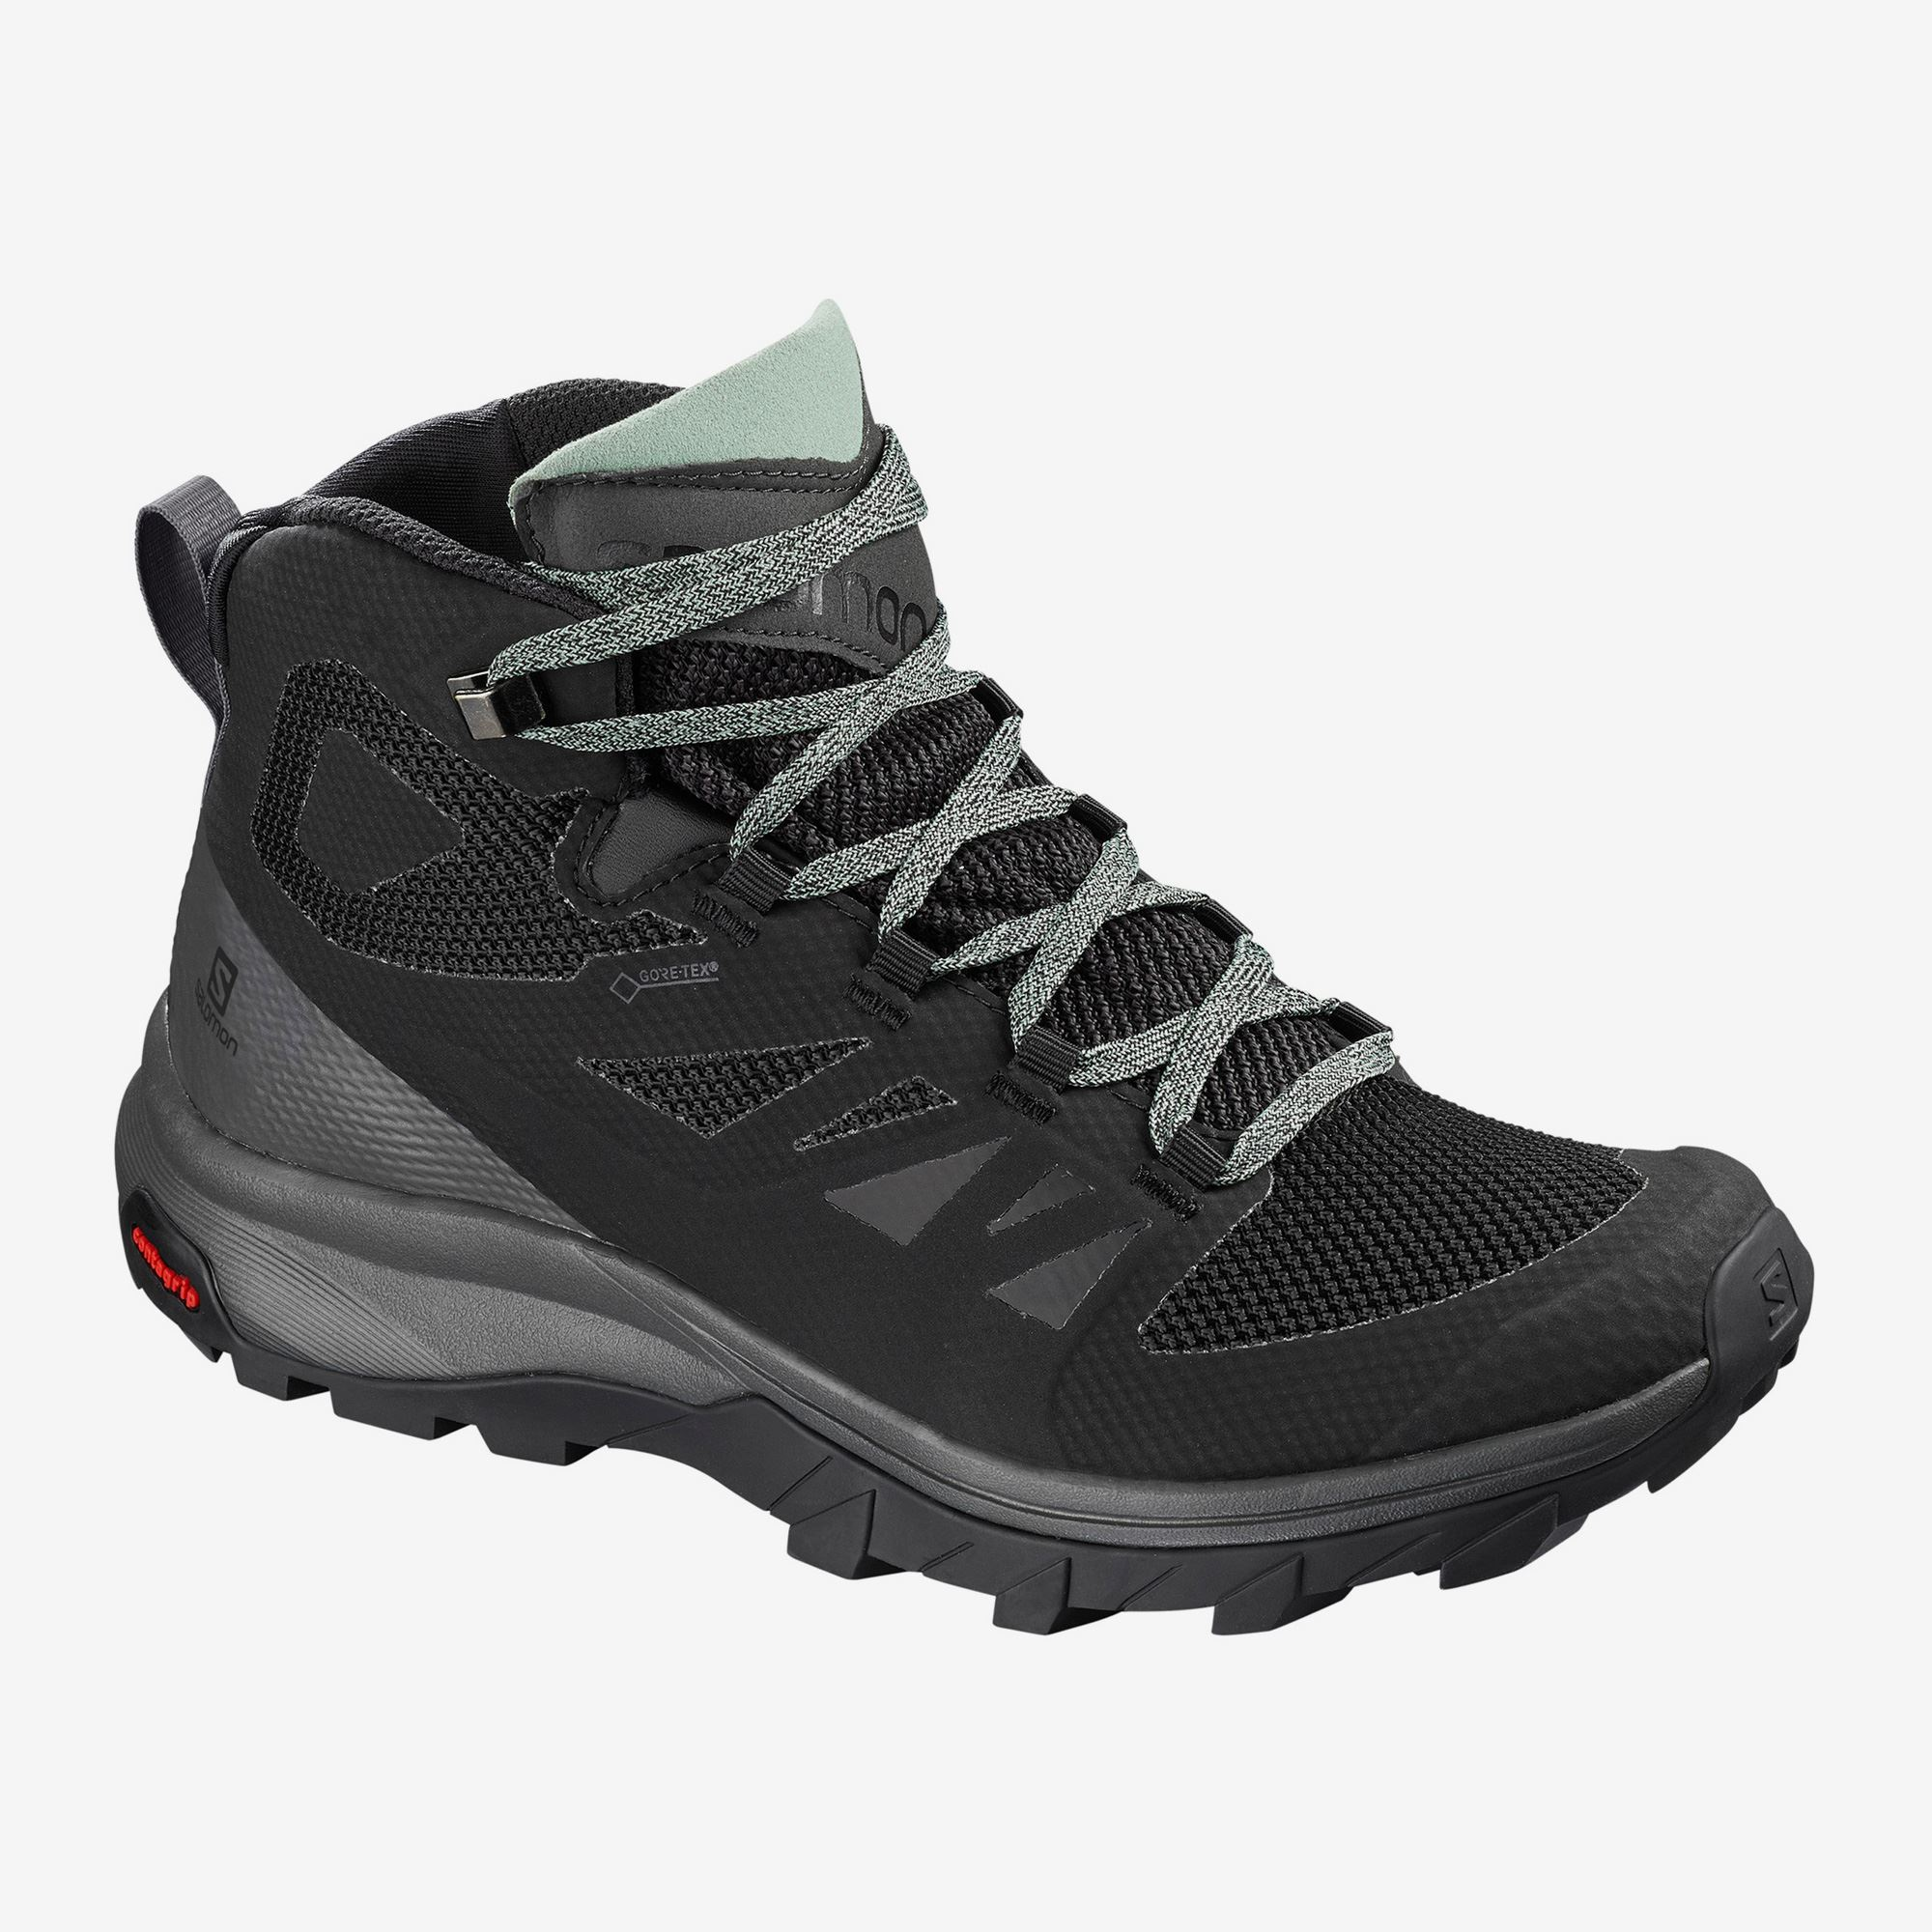 OUTline Mid GTX Boot - Women's